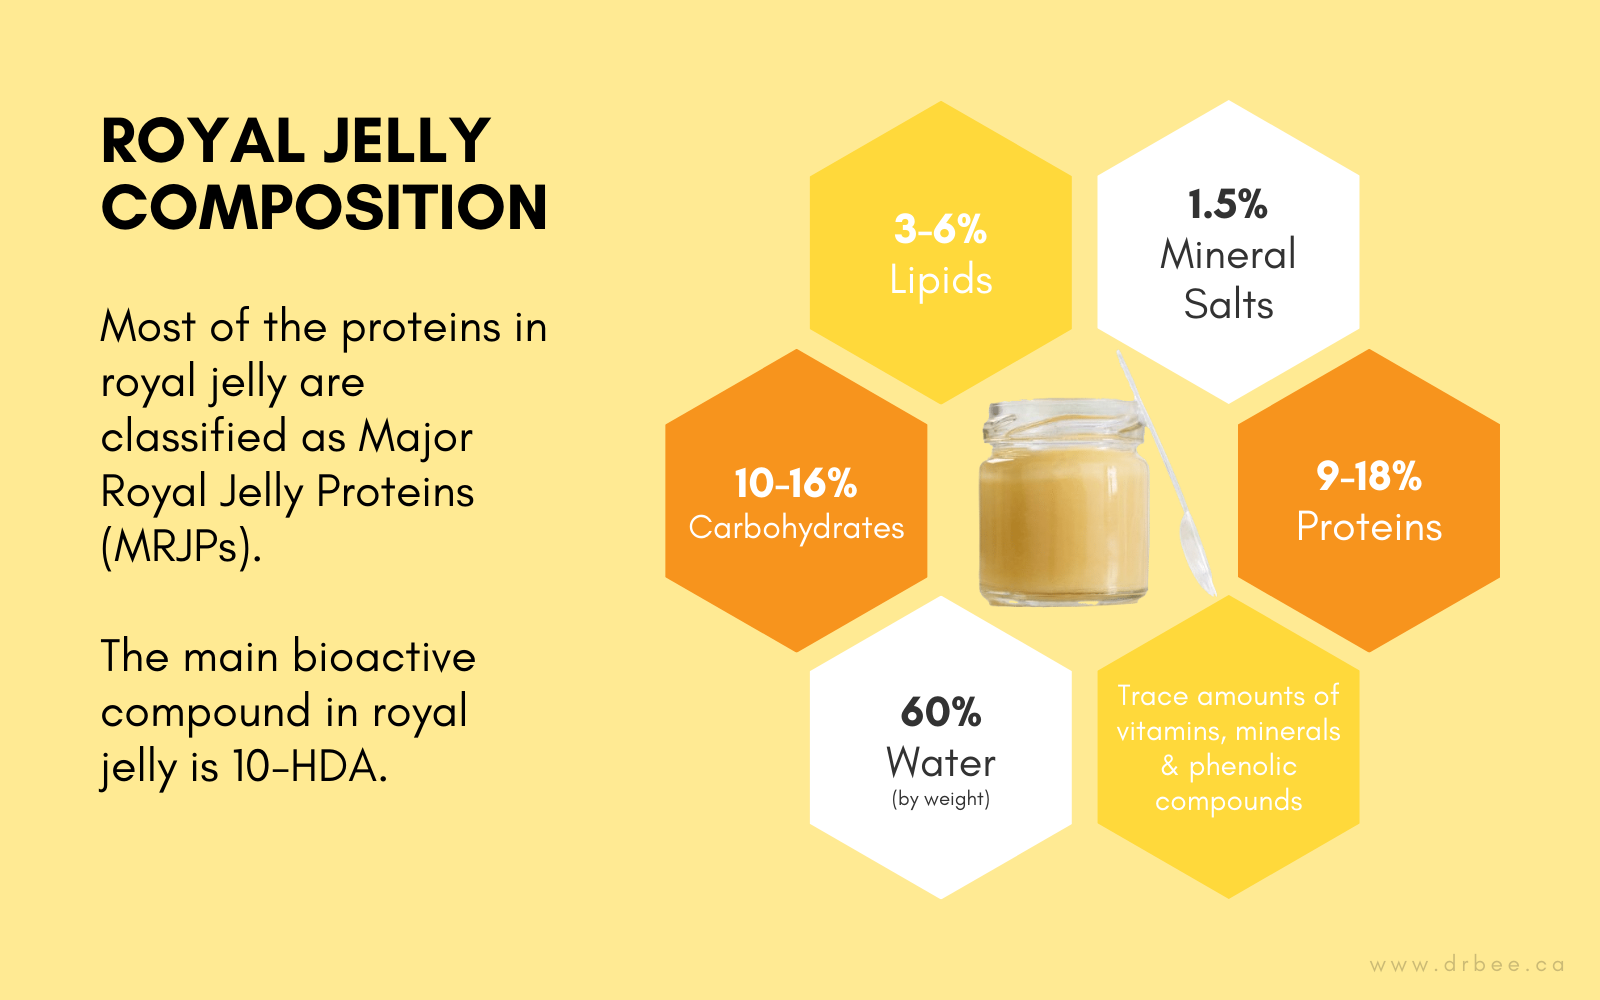 Royal Jelly Composition